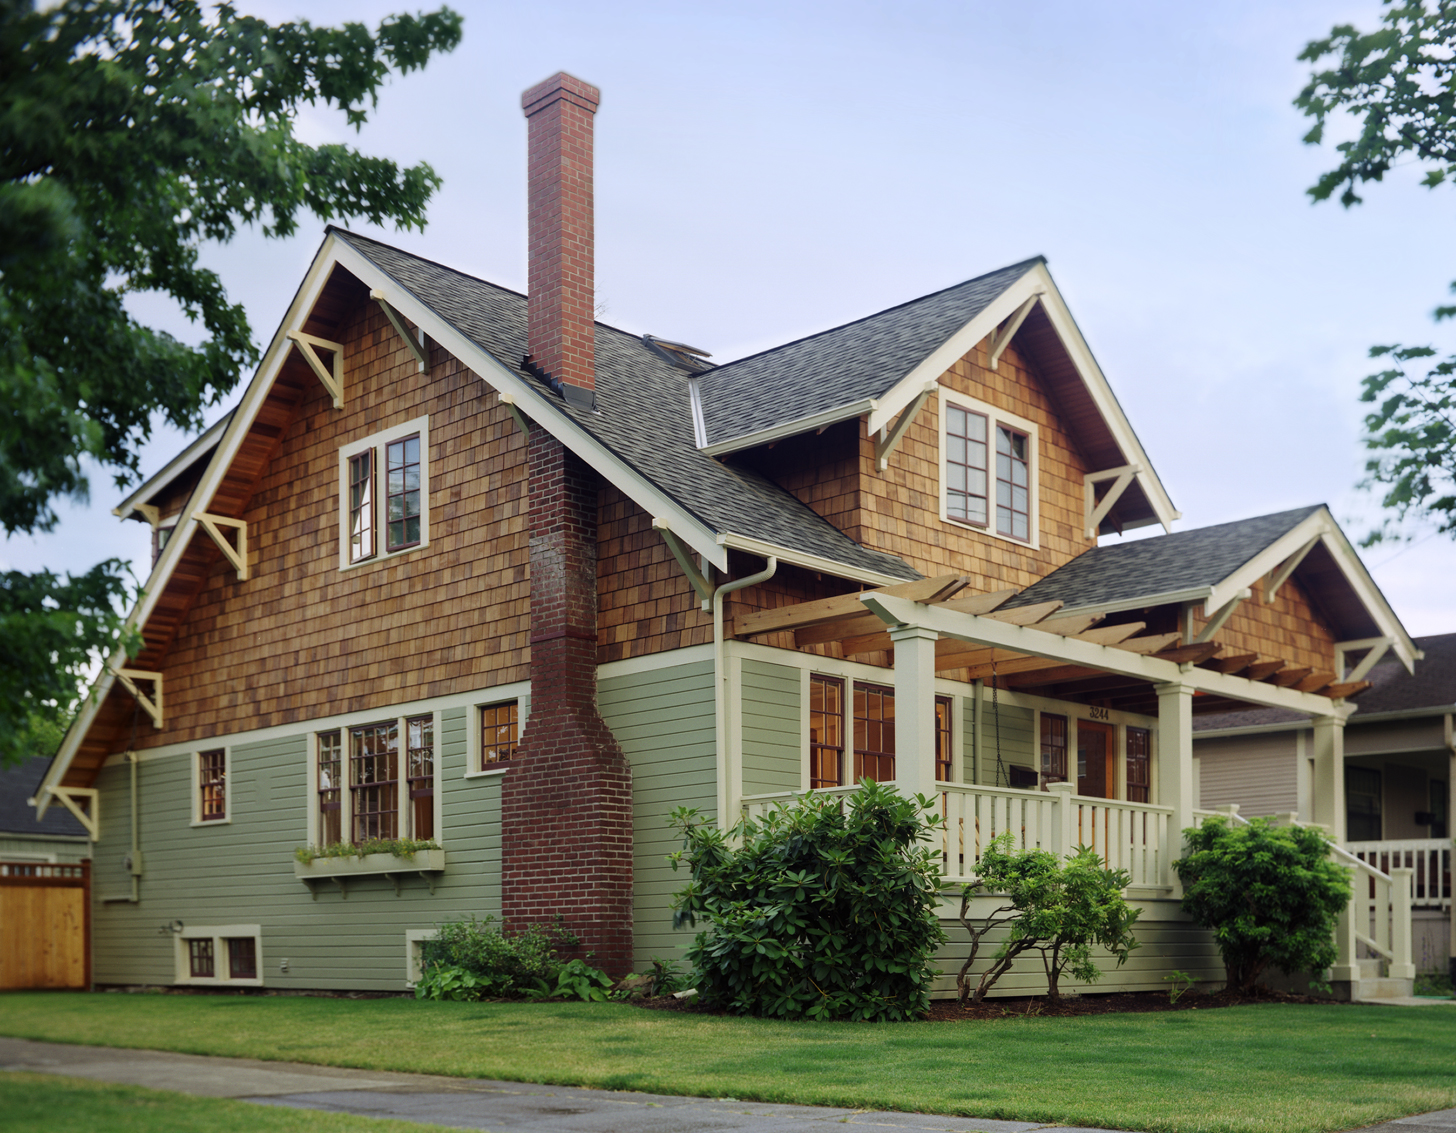 Seven home styles of the pacific northwest illustrated by for New craftsman homes